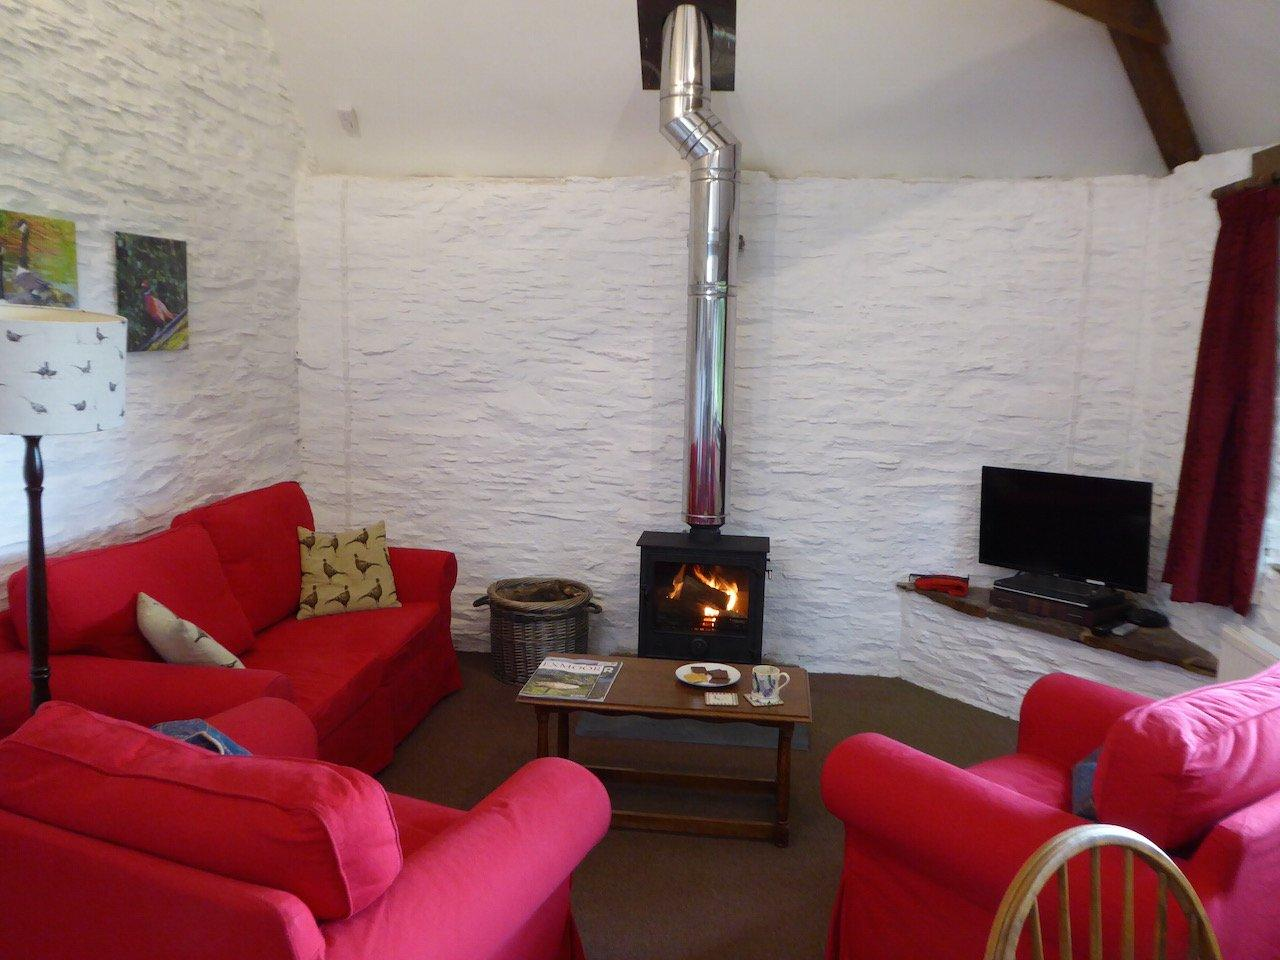 Seating Area with Wood Burning Stove